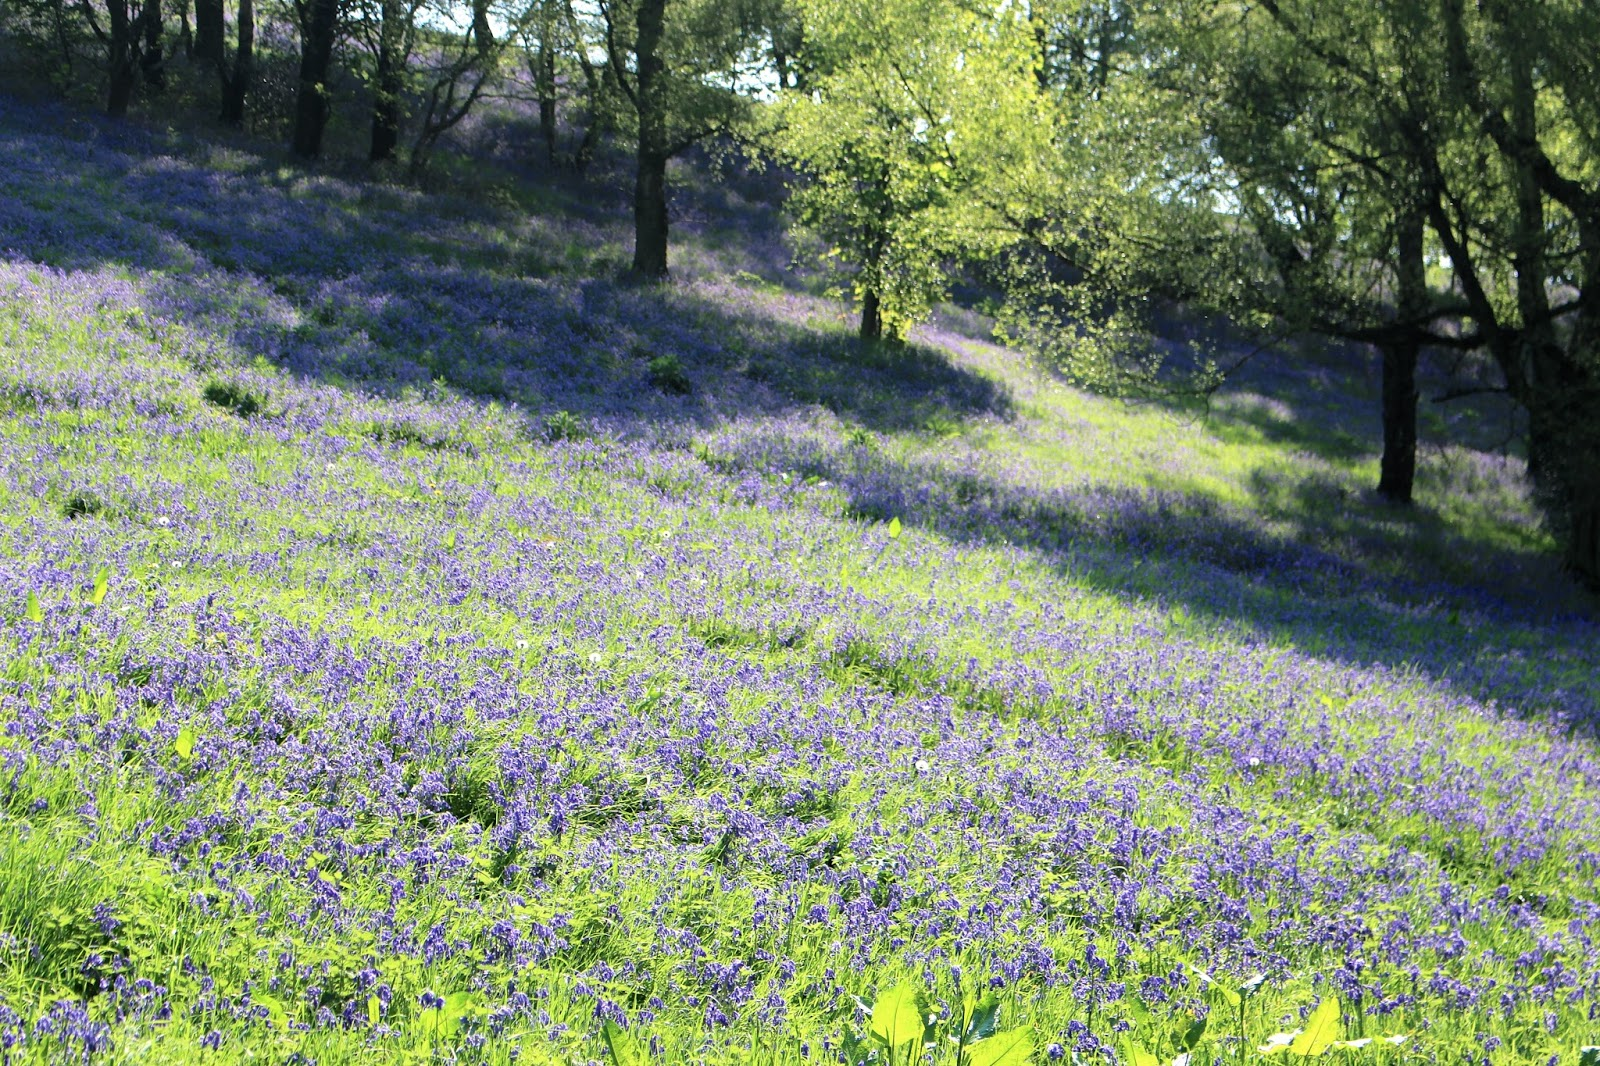 Colwall bluebell fields